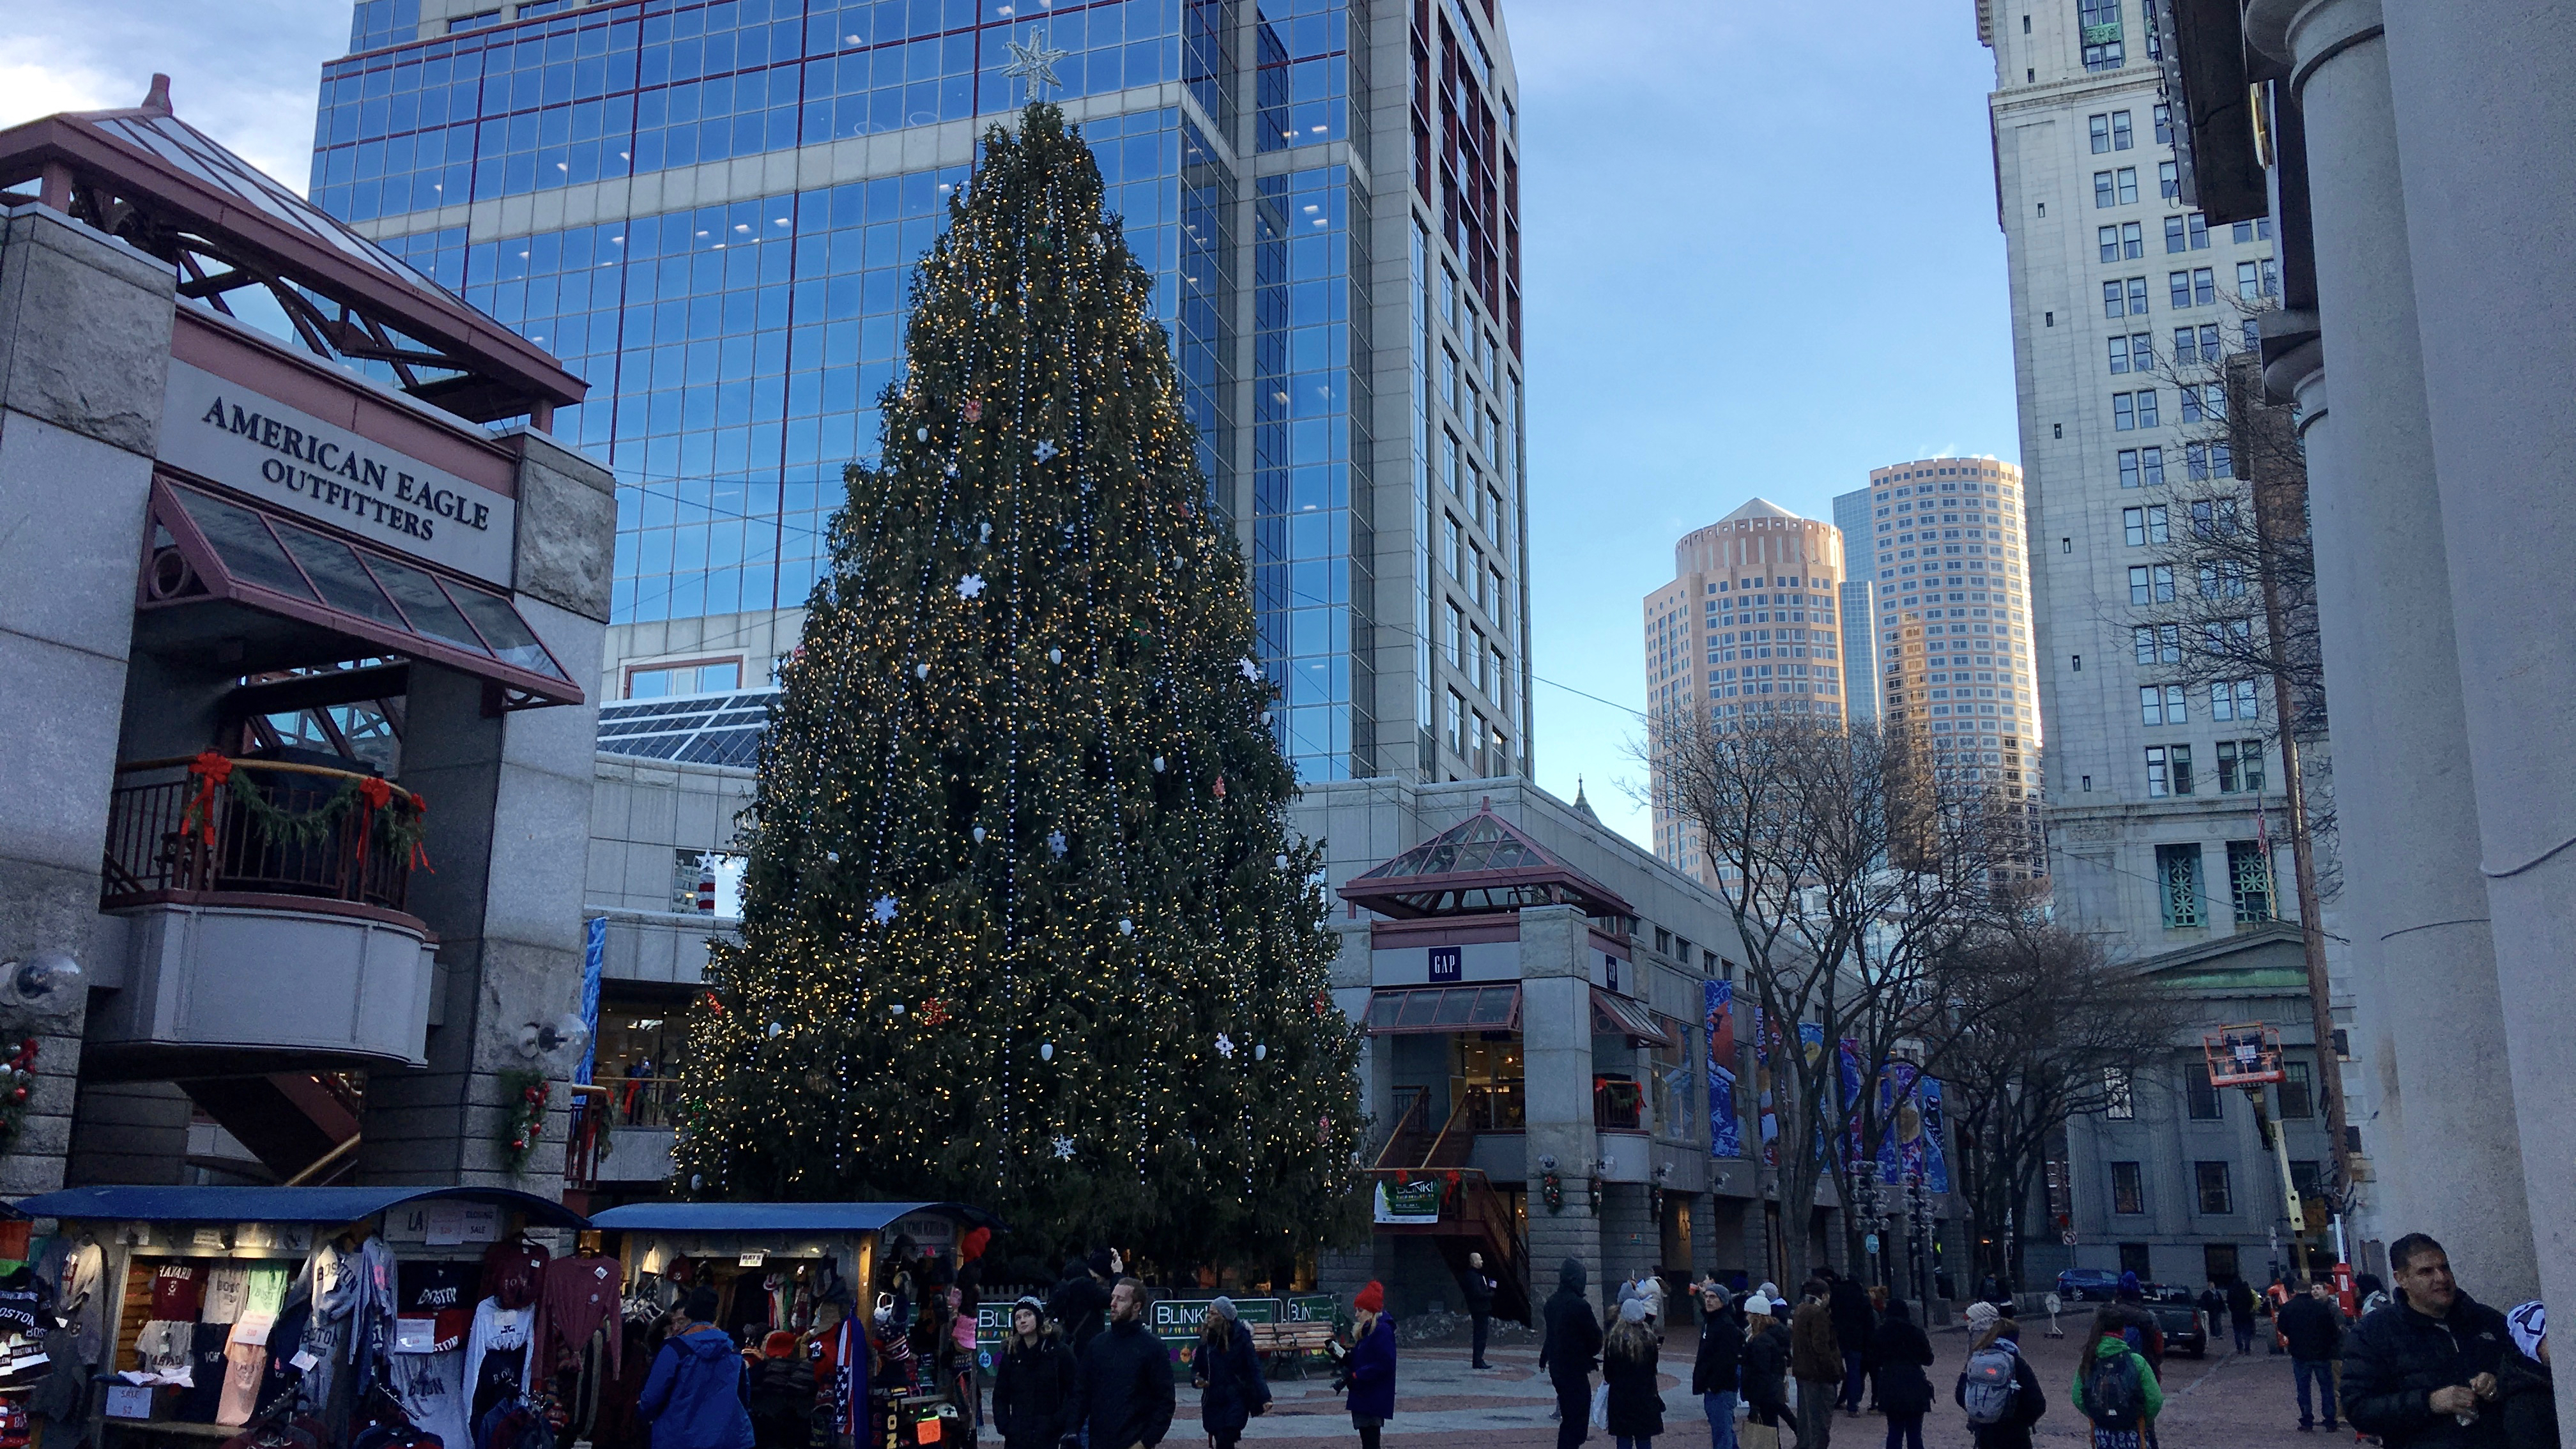 The Christmas tree at Faneuil Hall marketplace in downtown Boston is from Long Island, New York. But is it a religious symbol? Many people say, not really.